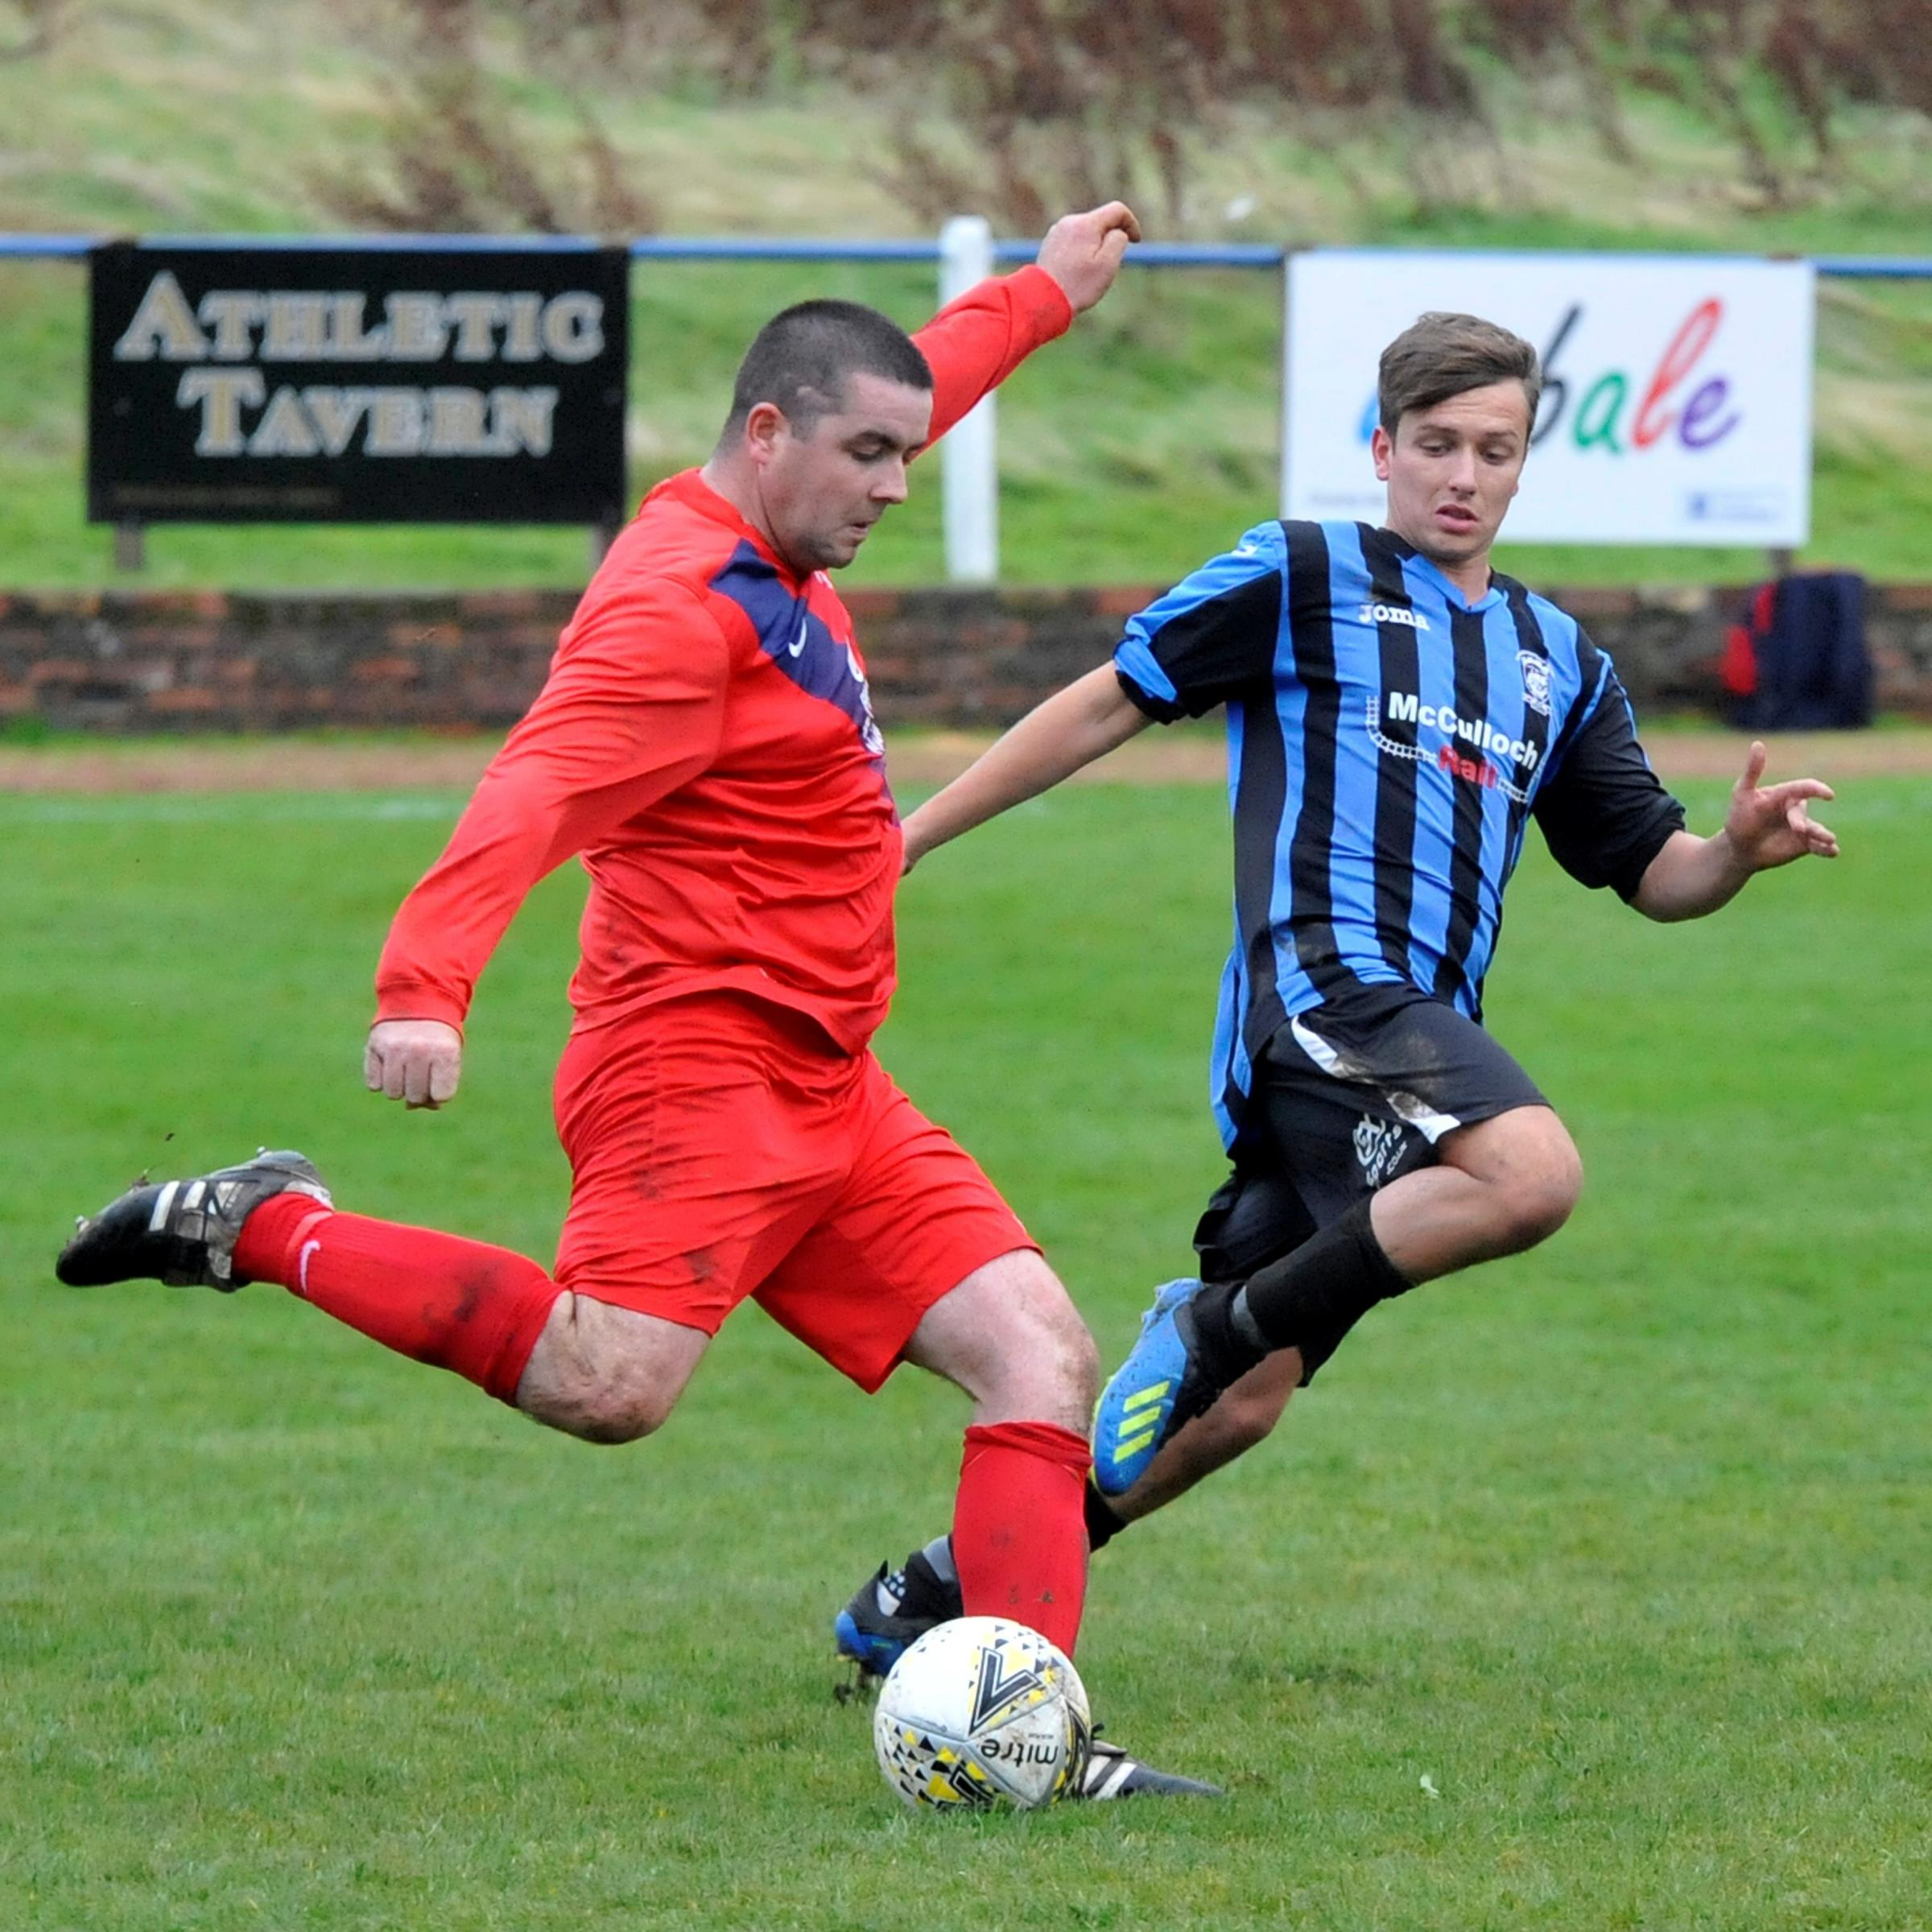 CUP TIE: Girvan beat Muirkirk 6-5 on penalties